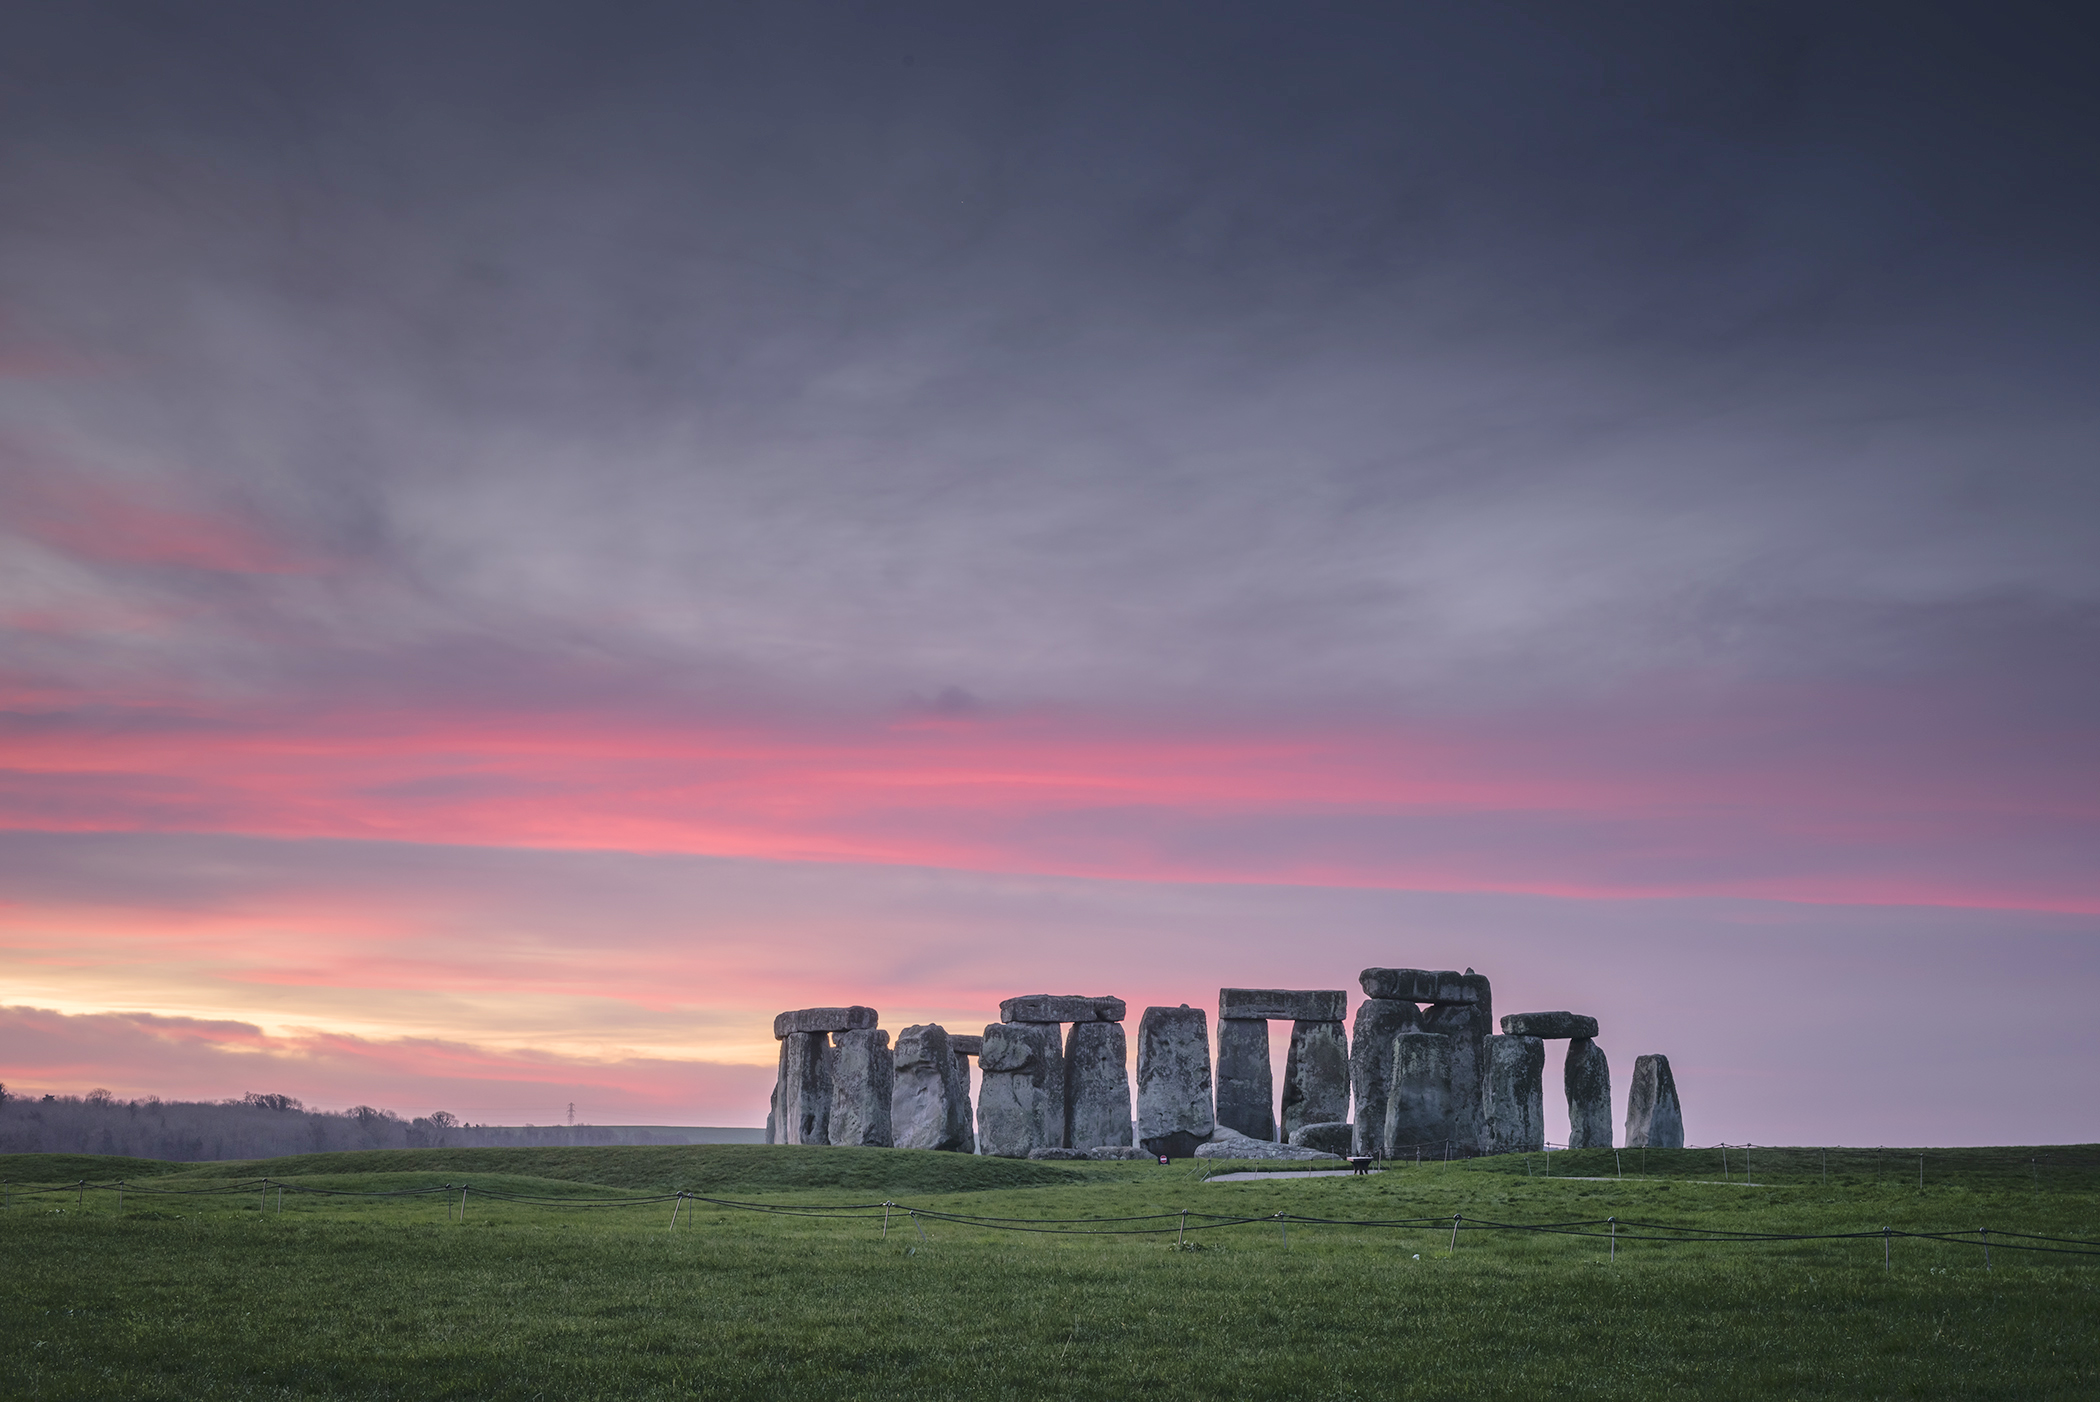 Picturesque view of Stonehenge during dawn on December 28, 2015 in Salisbury, England.